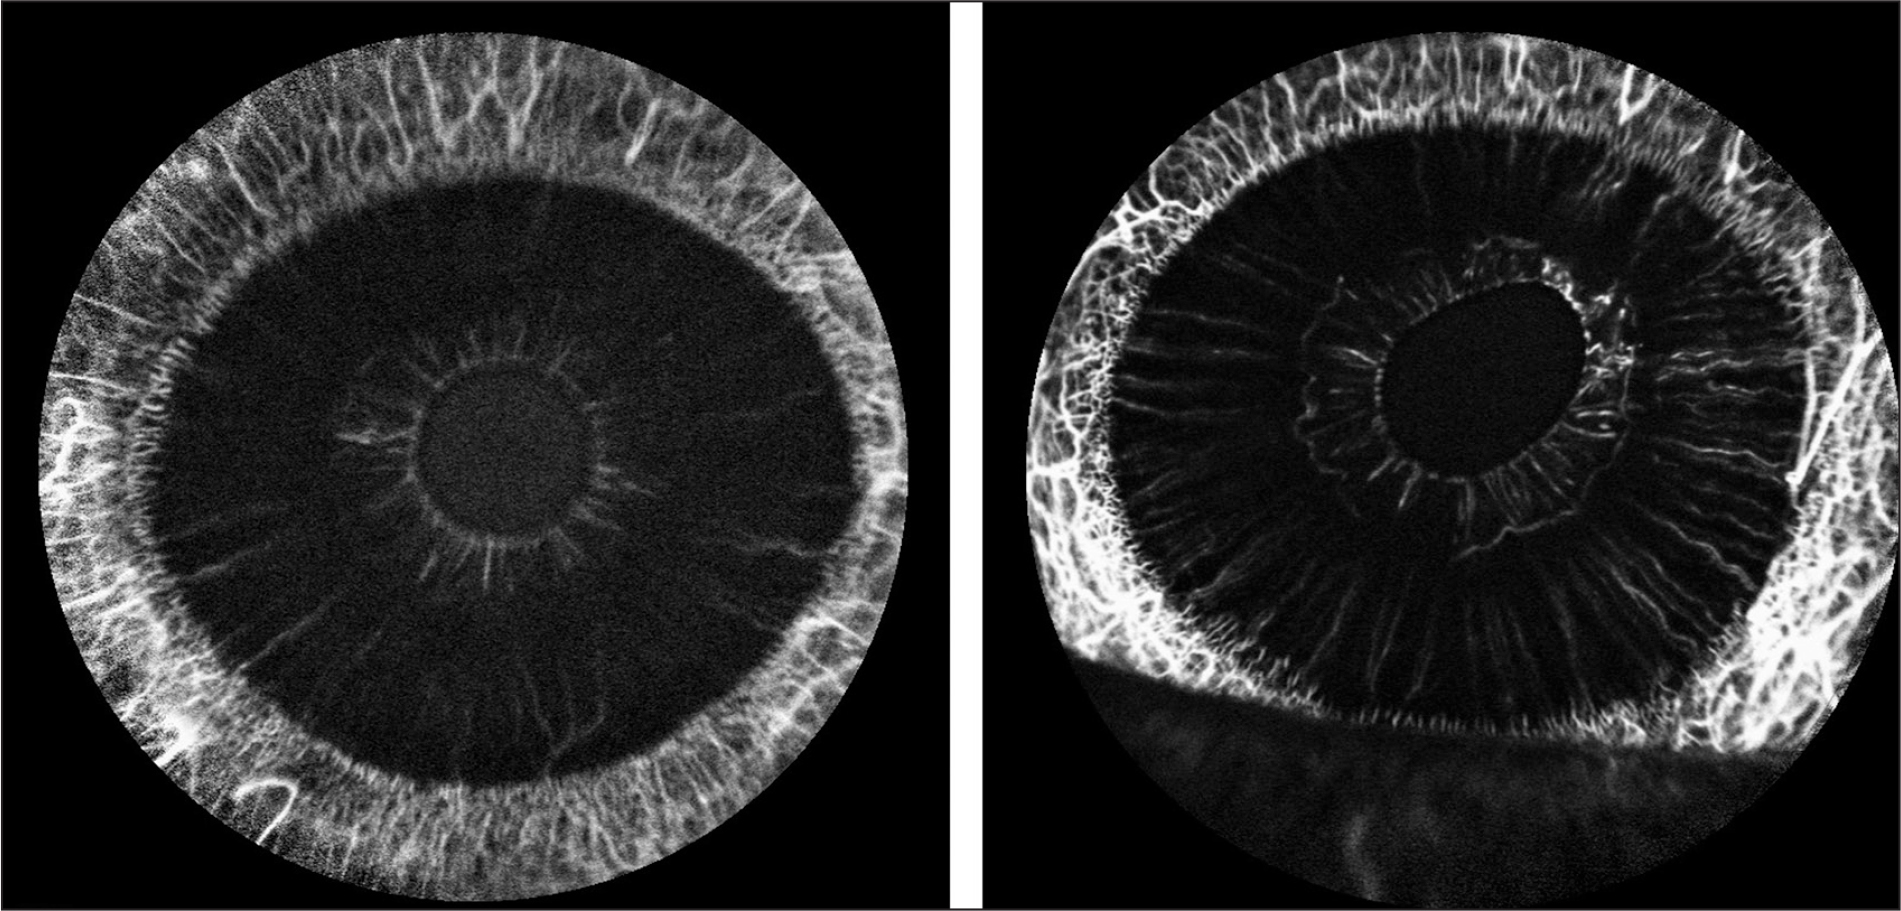 Iris angiogram showing sectoral iris vasculature discontinuity in the left eye 2 months after surgery.